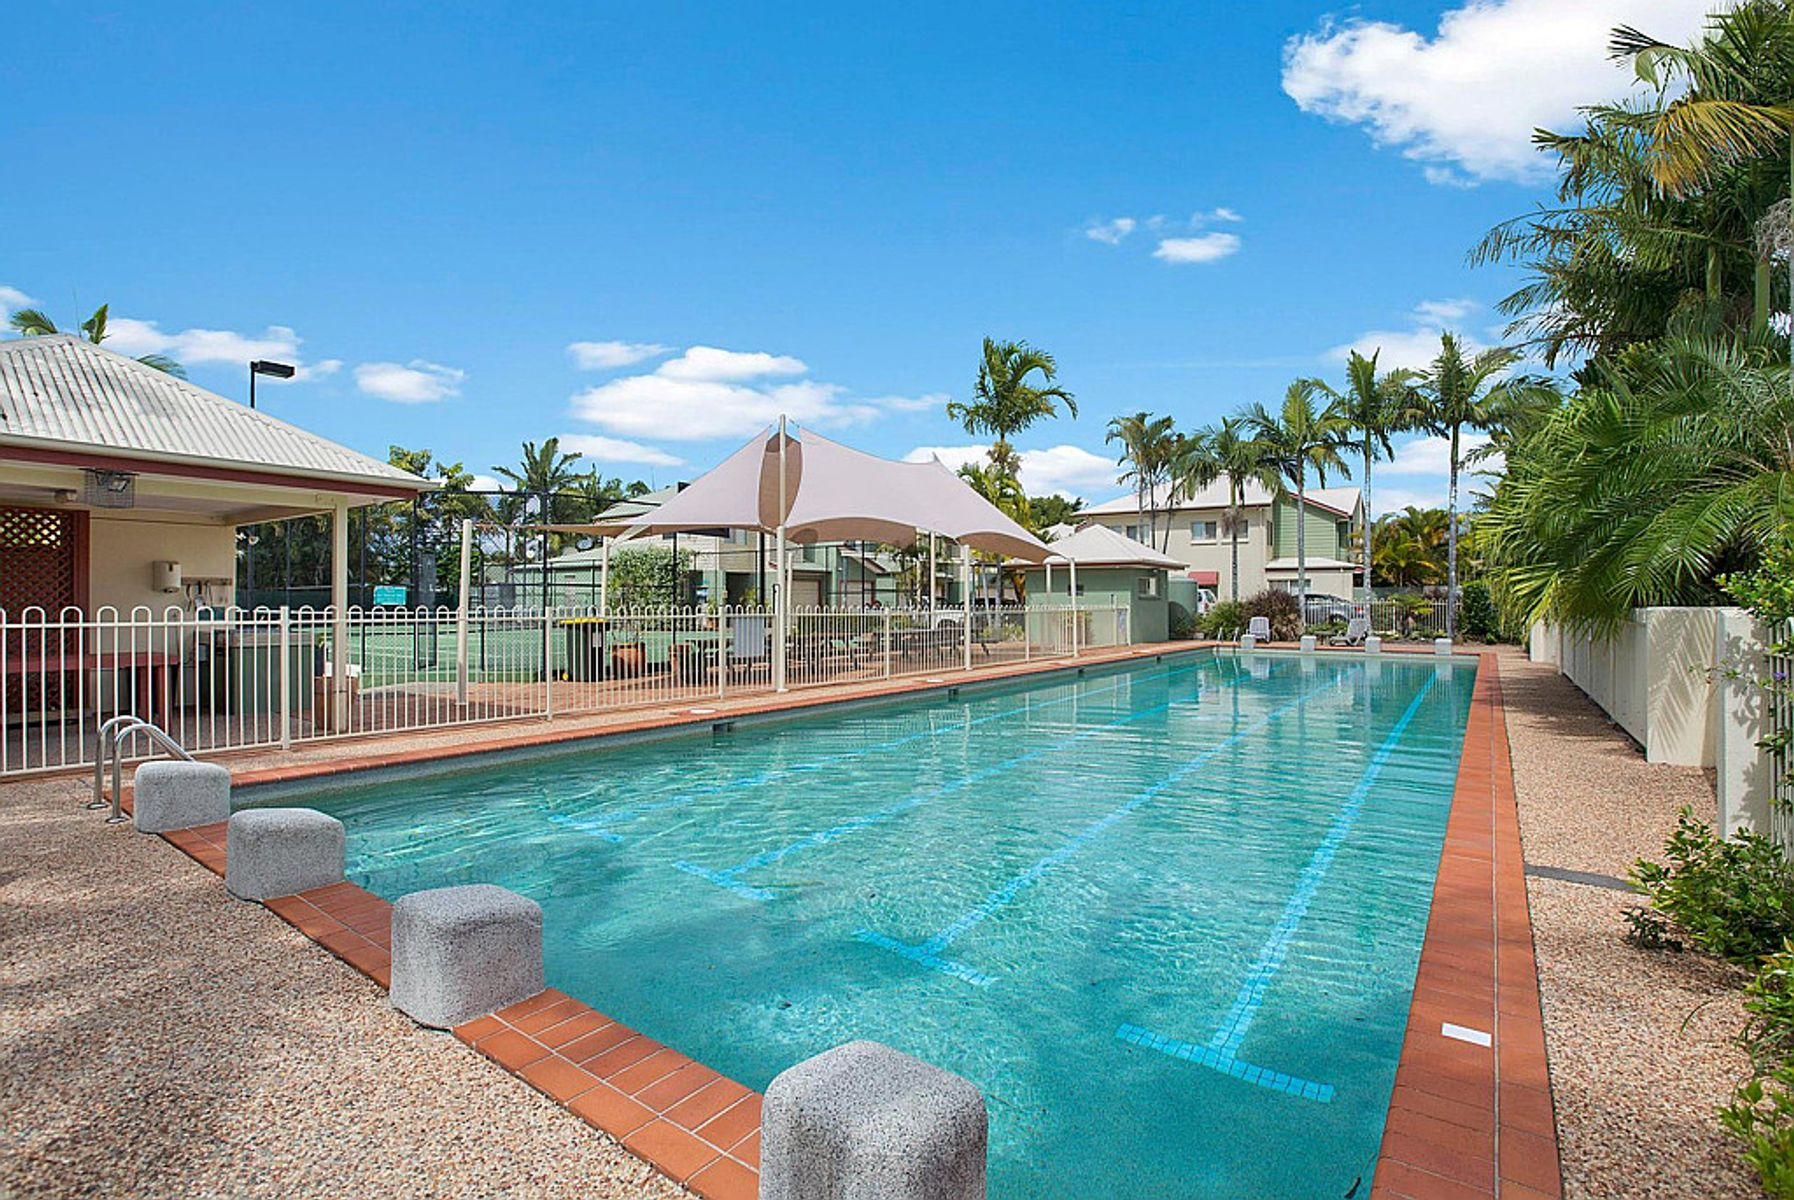 51/23 Scholars Drive, Sippy Downs, QLD 4556